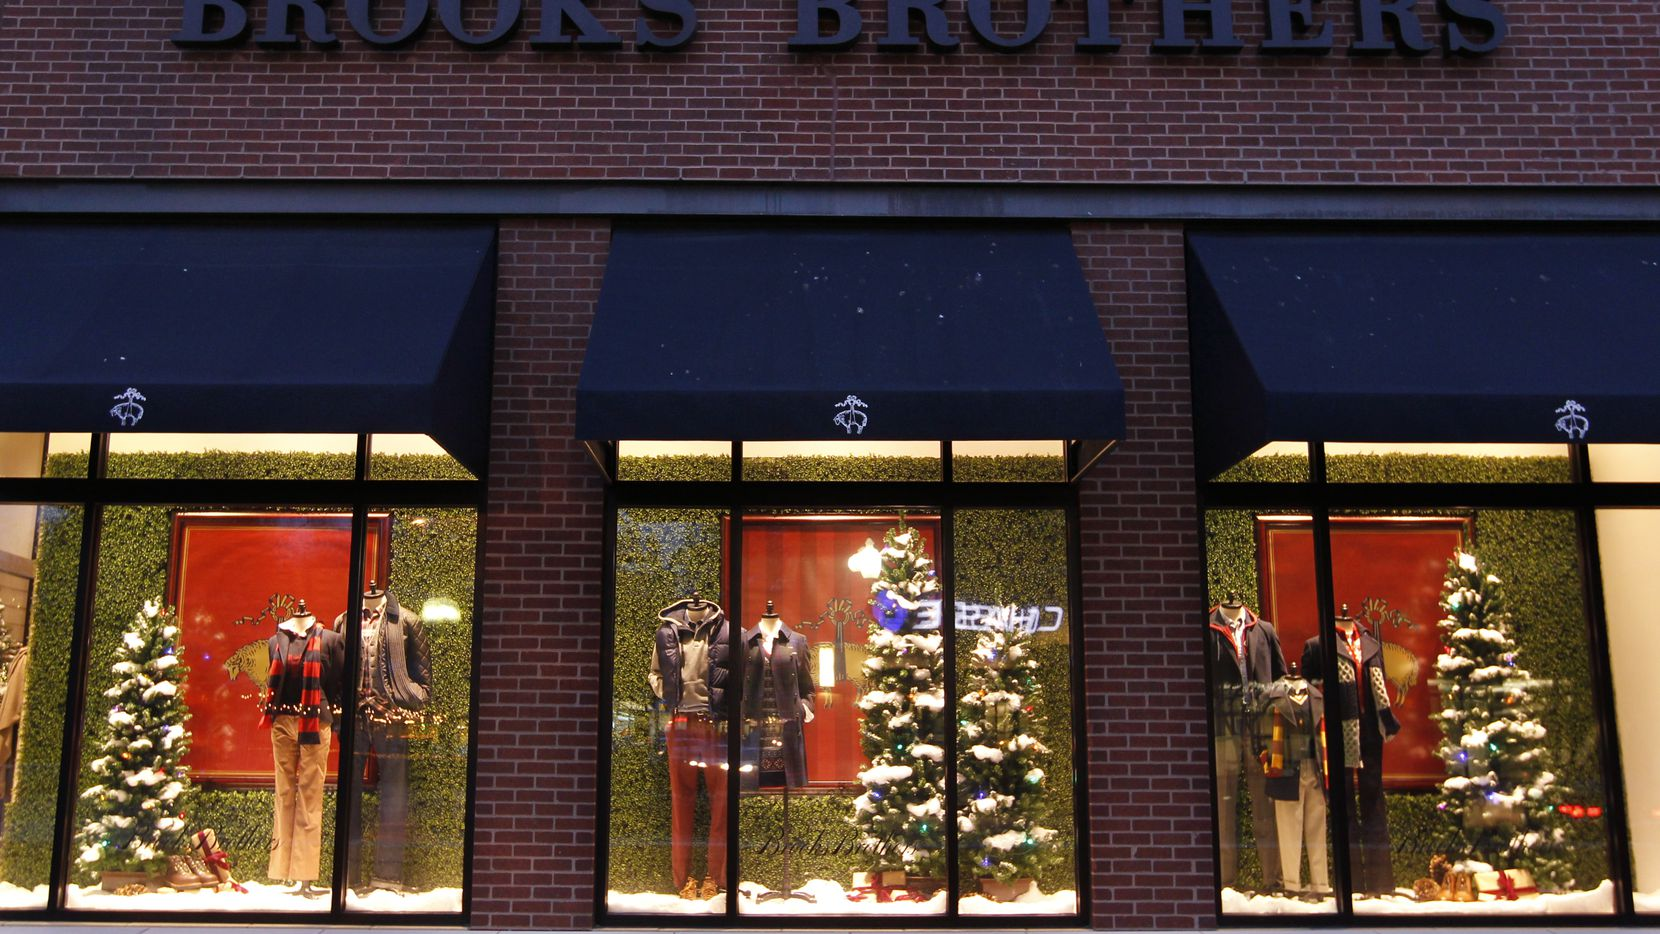 The holiday windows at Brooks Brothers on McKinney Avenue in the West Village of Uptown Dallas from a Christmas past. The storied men's apparel retailer filed for Chapter 11 on Wednesday.